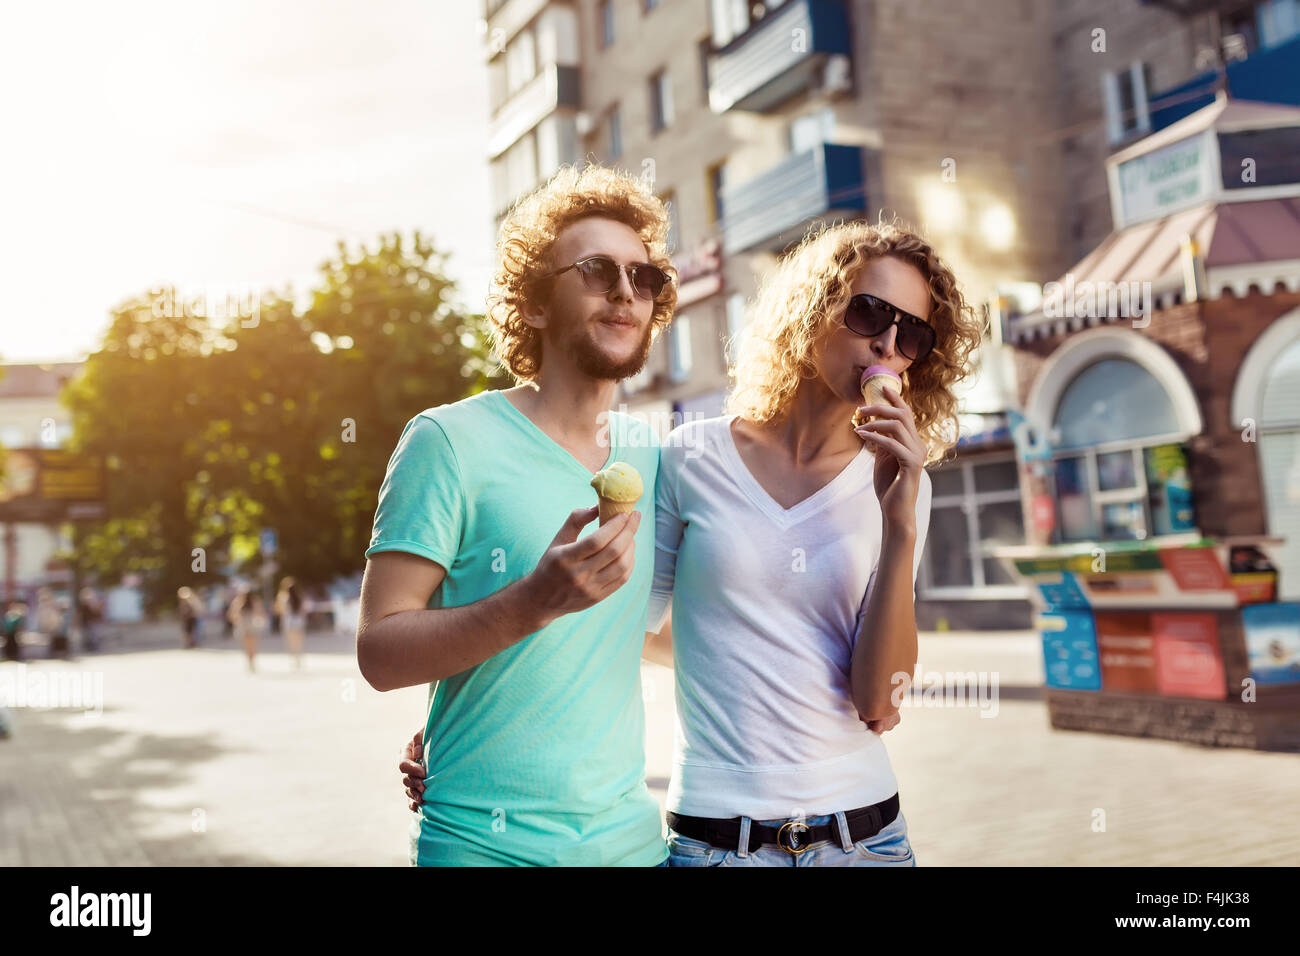 Handsome young couple walking together and licking ice cream - Stock Image